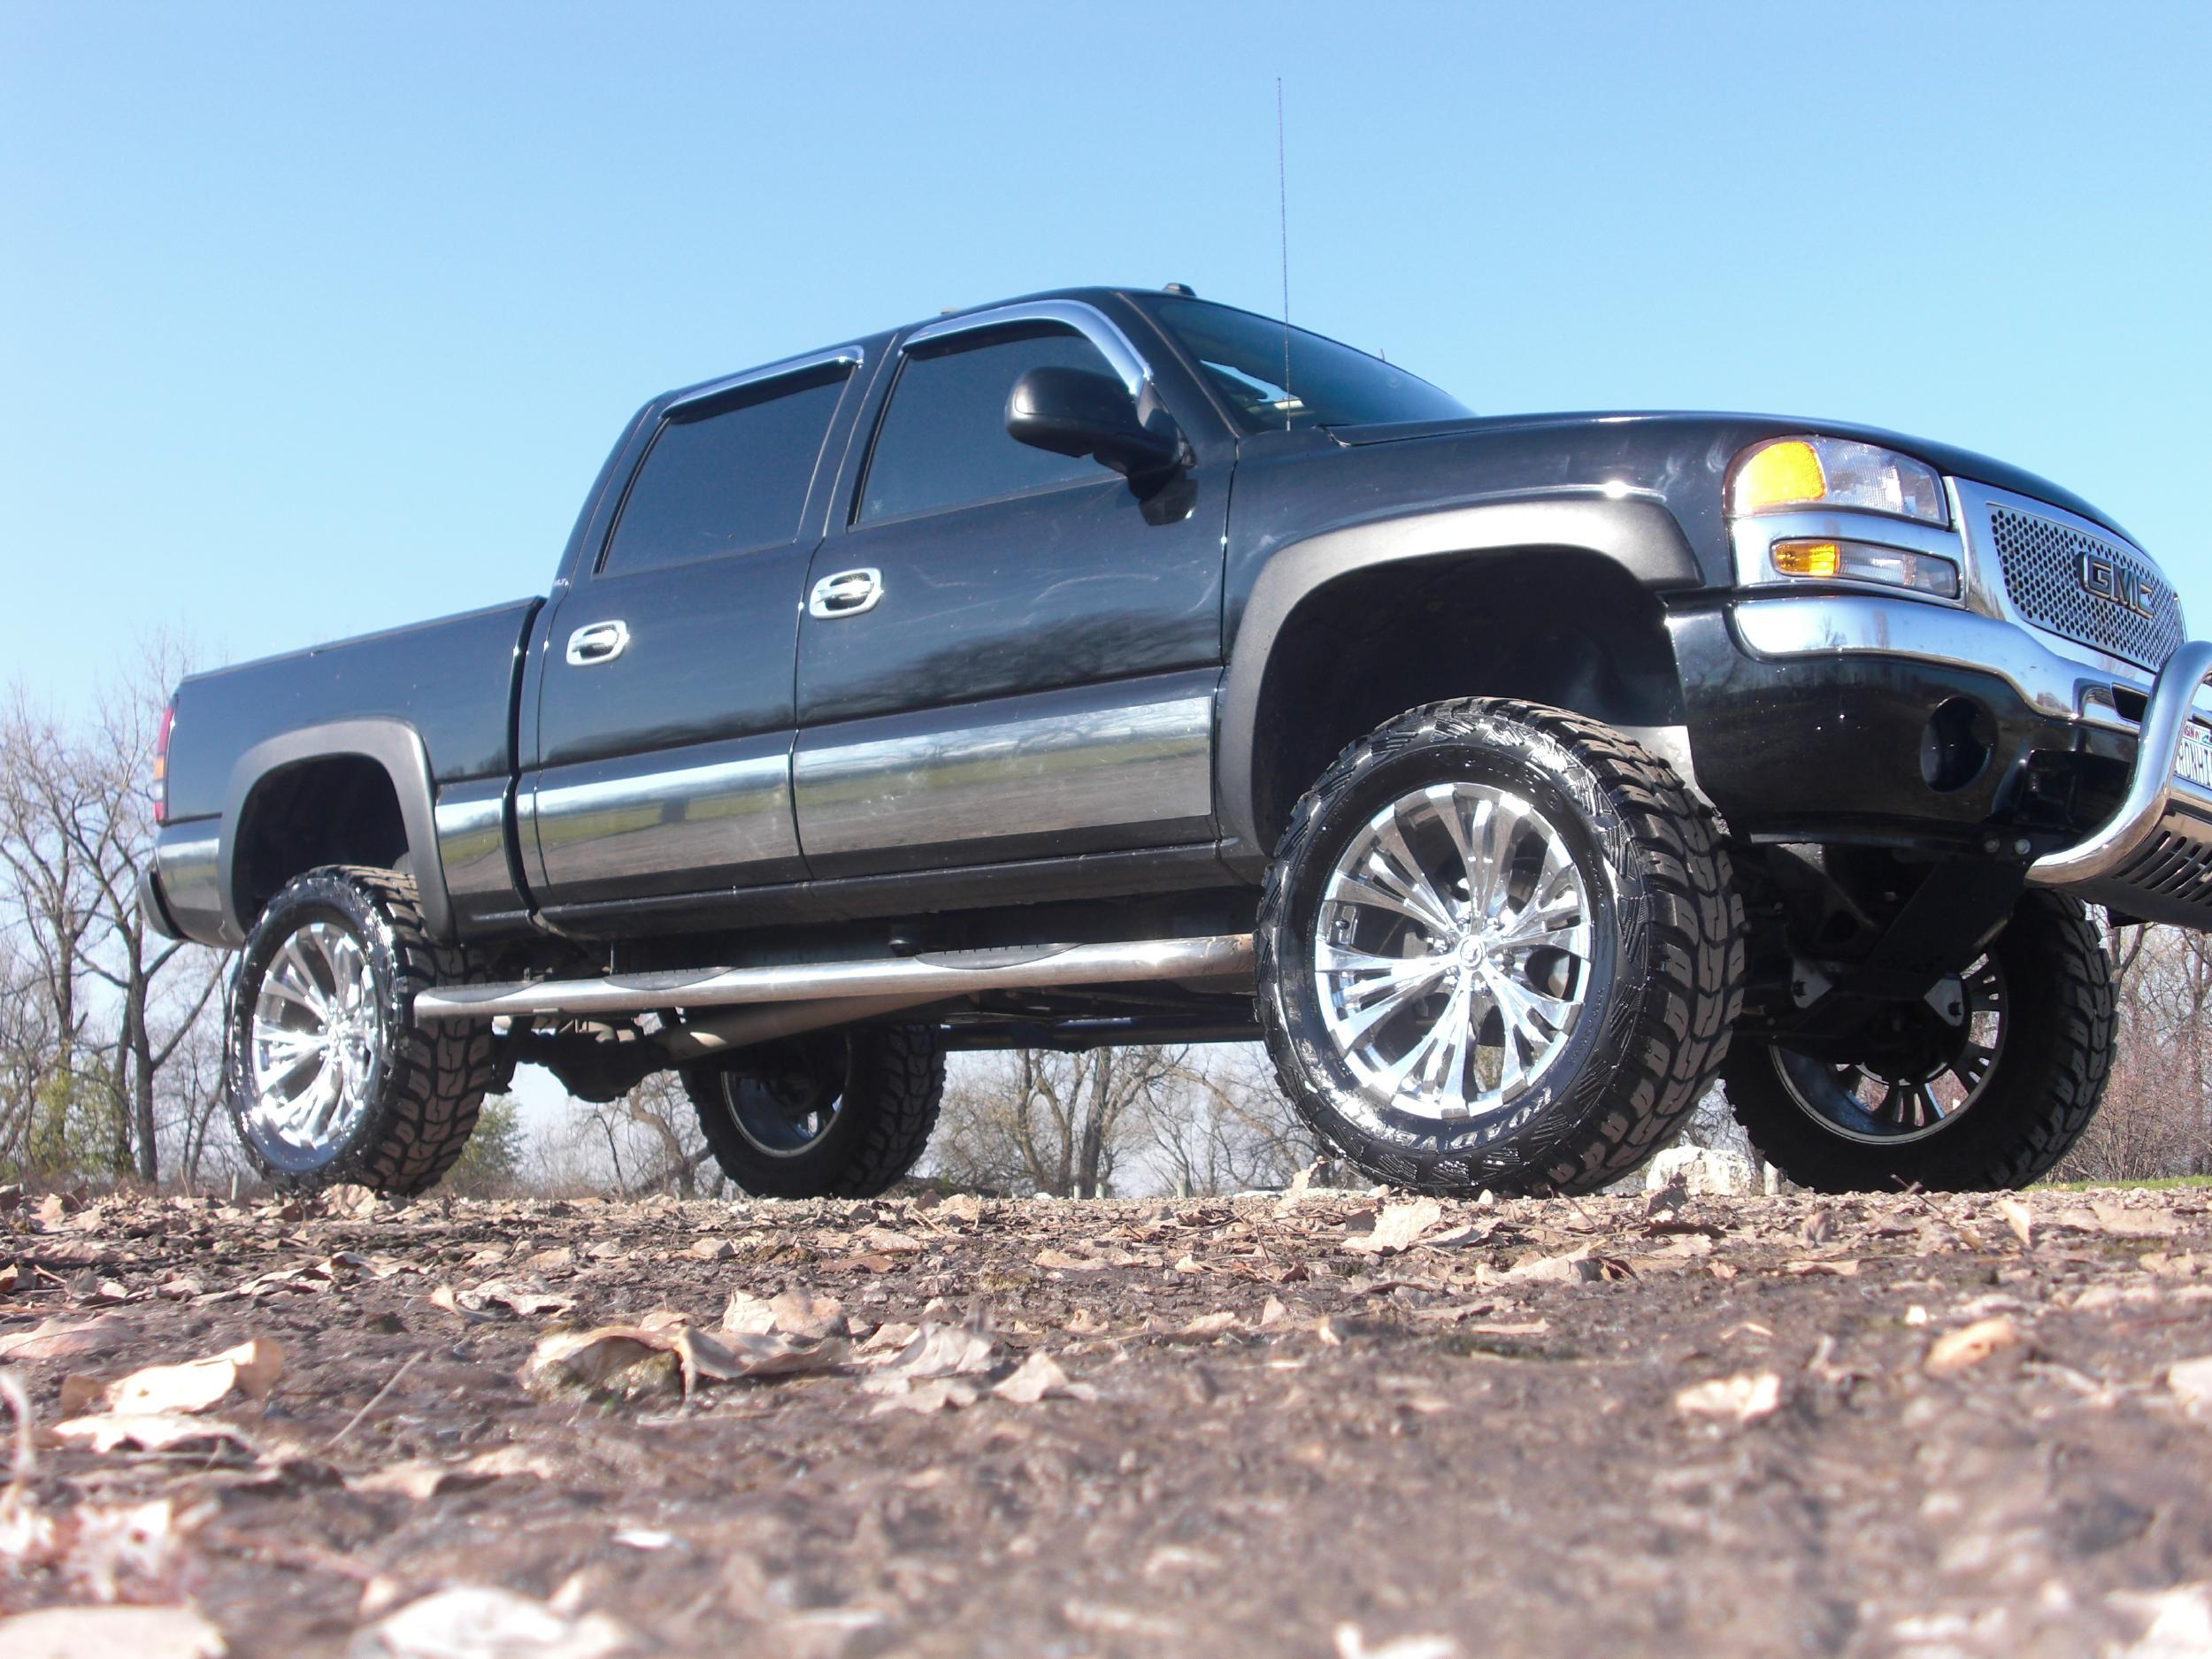 carramerod 2005 gmc sierra 1500 crew cab specs photos modification info at cardomain. Black Bedroom Furniture Sets. Home Design Ideas